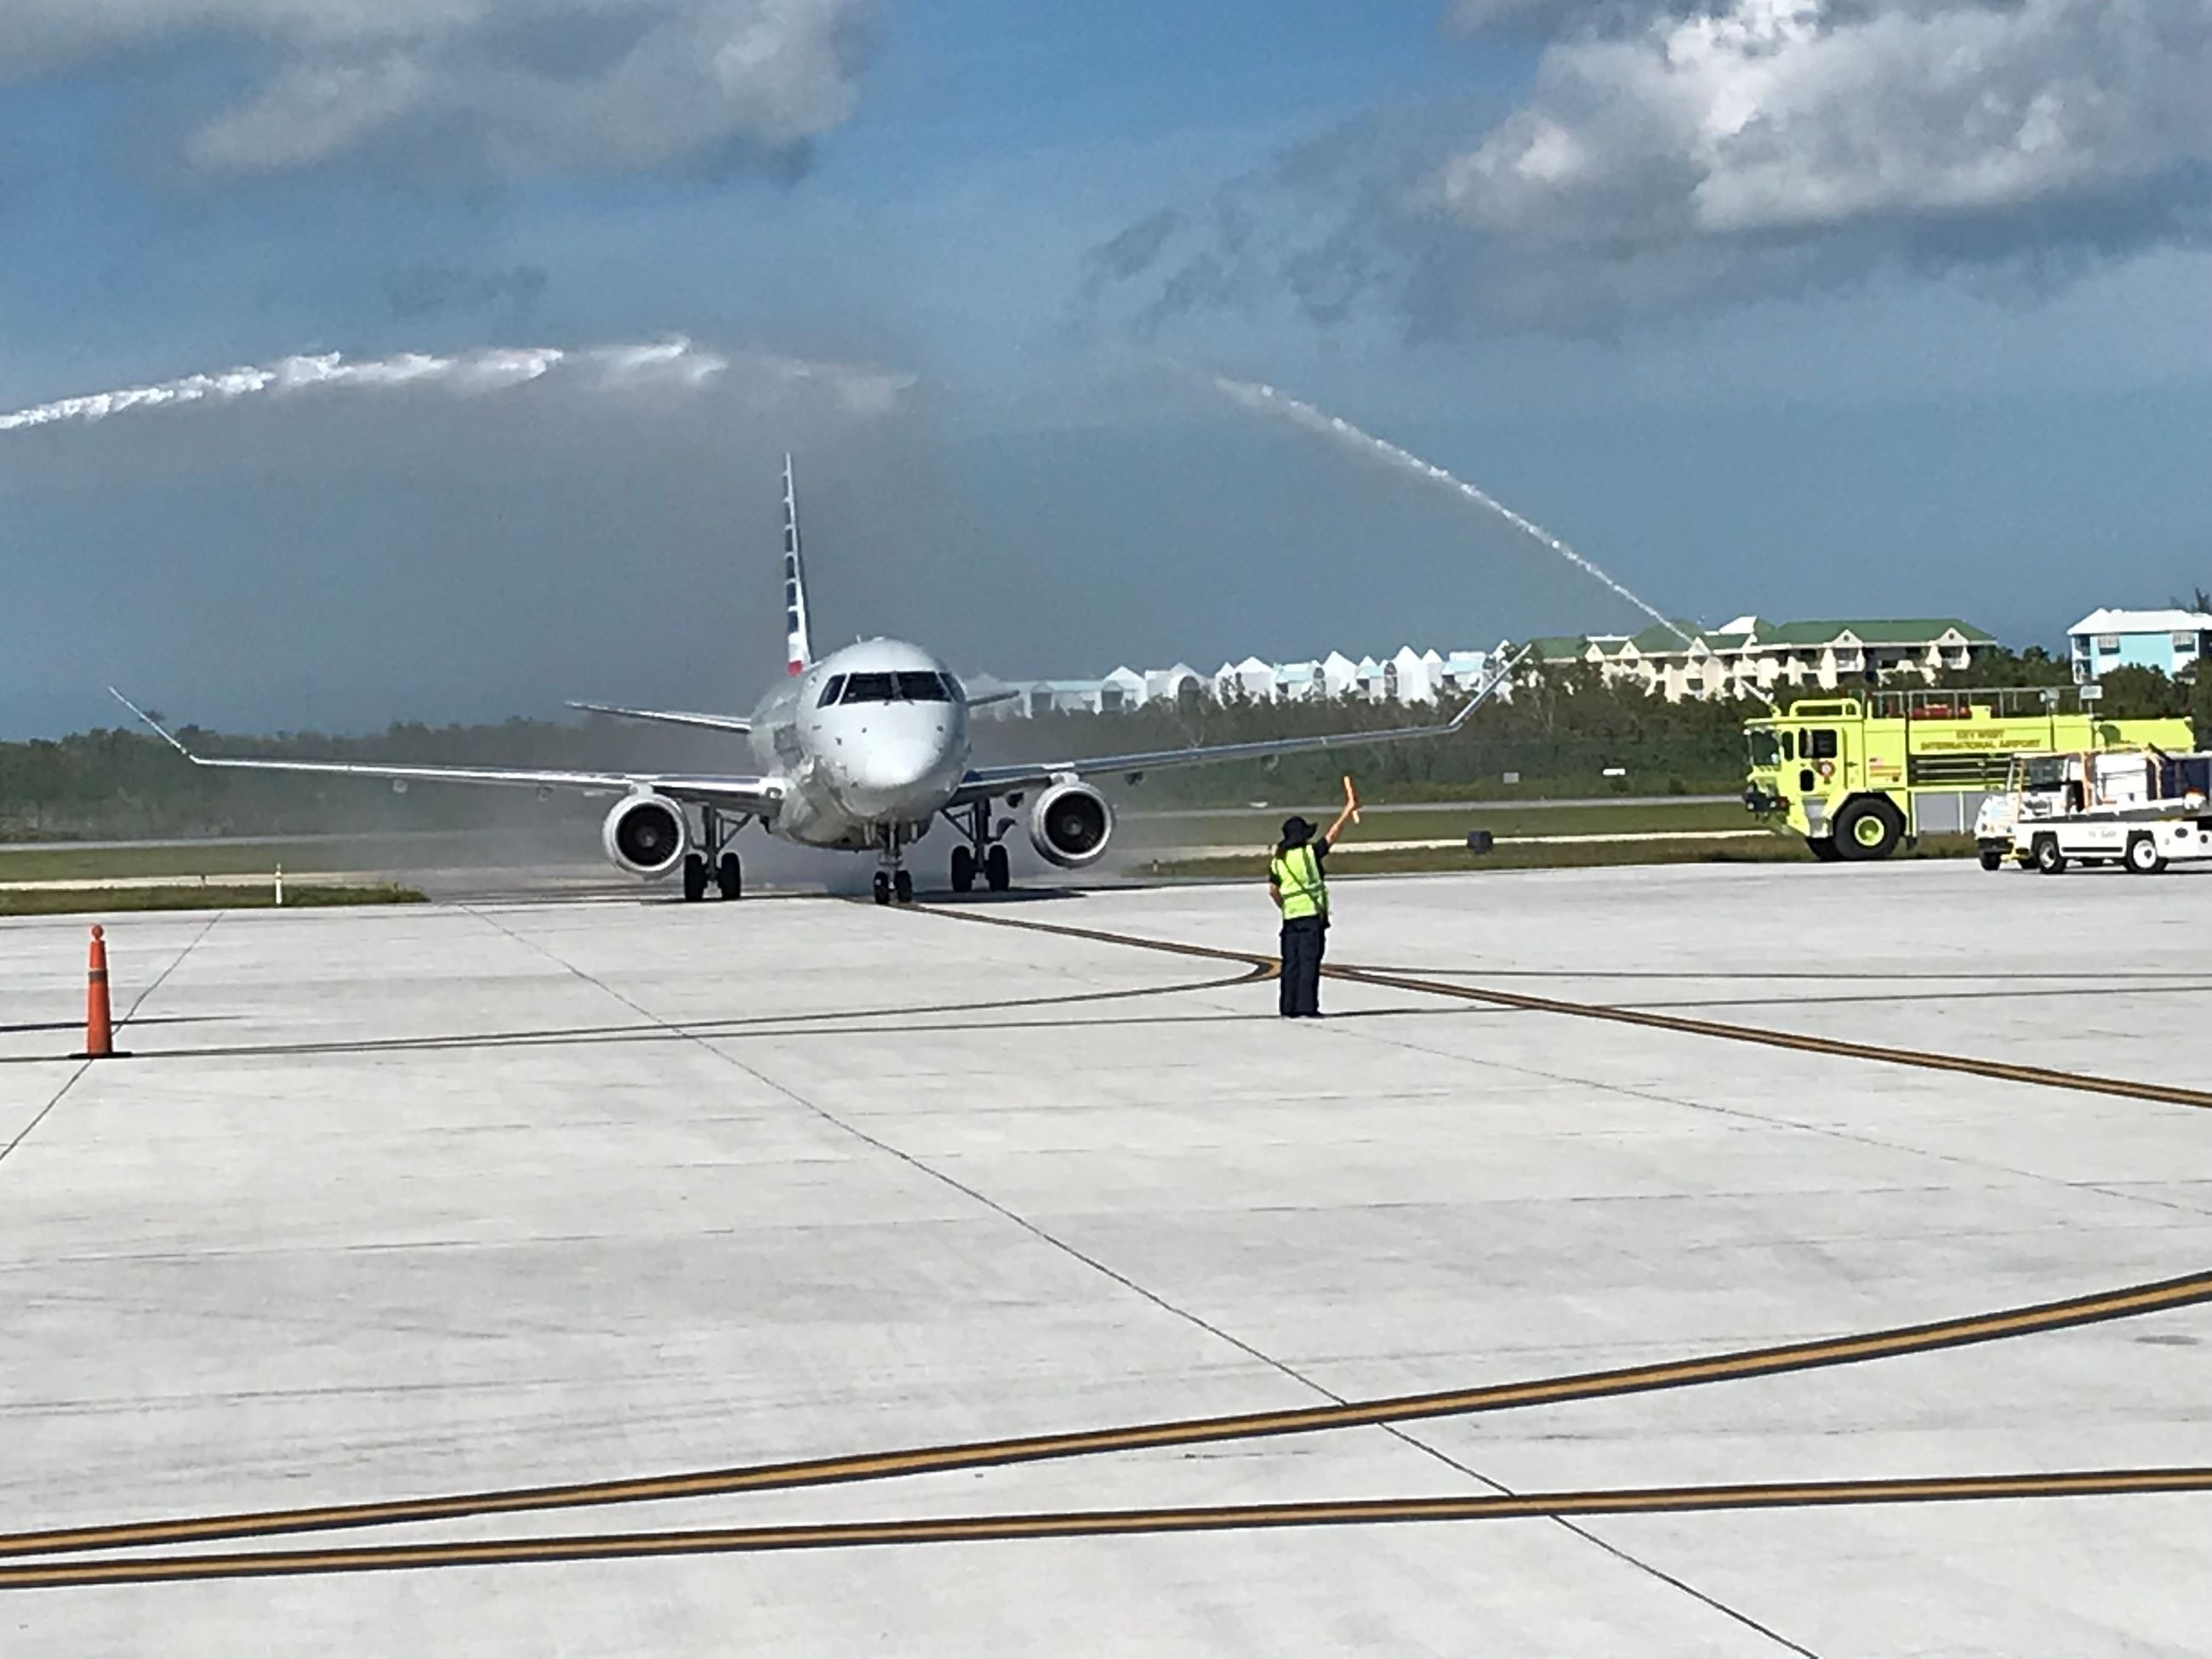 First Philly flight arrives at Key West International Airport